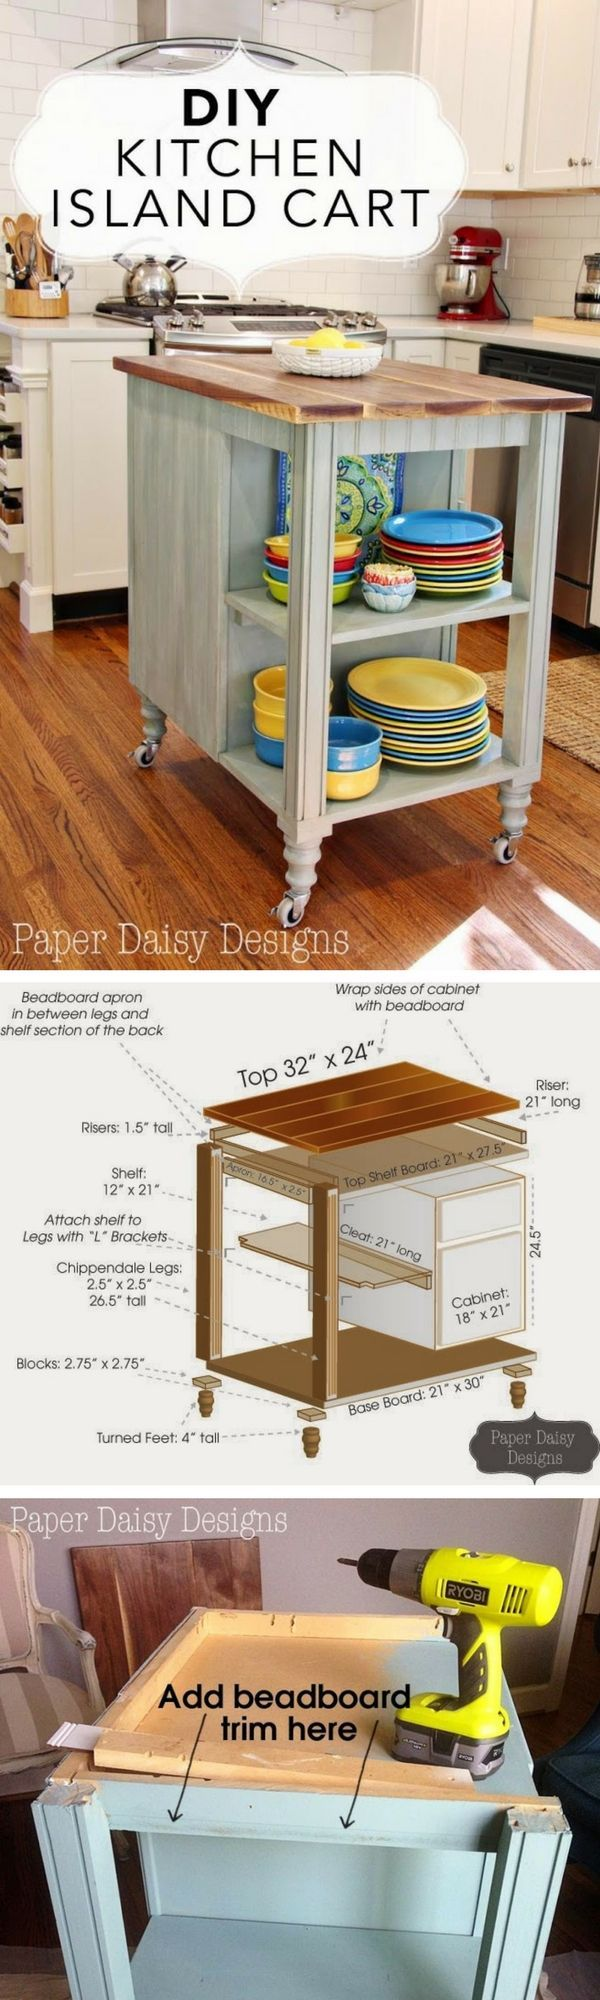 Check out the tutorial on how to build a DIY kitchen island cart @istandarddesign